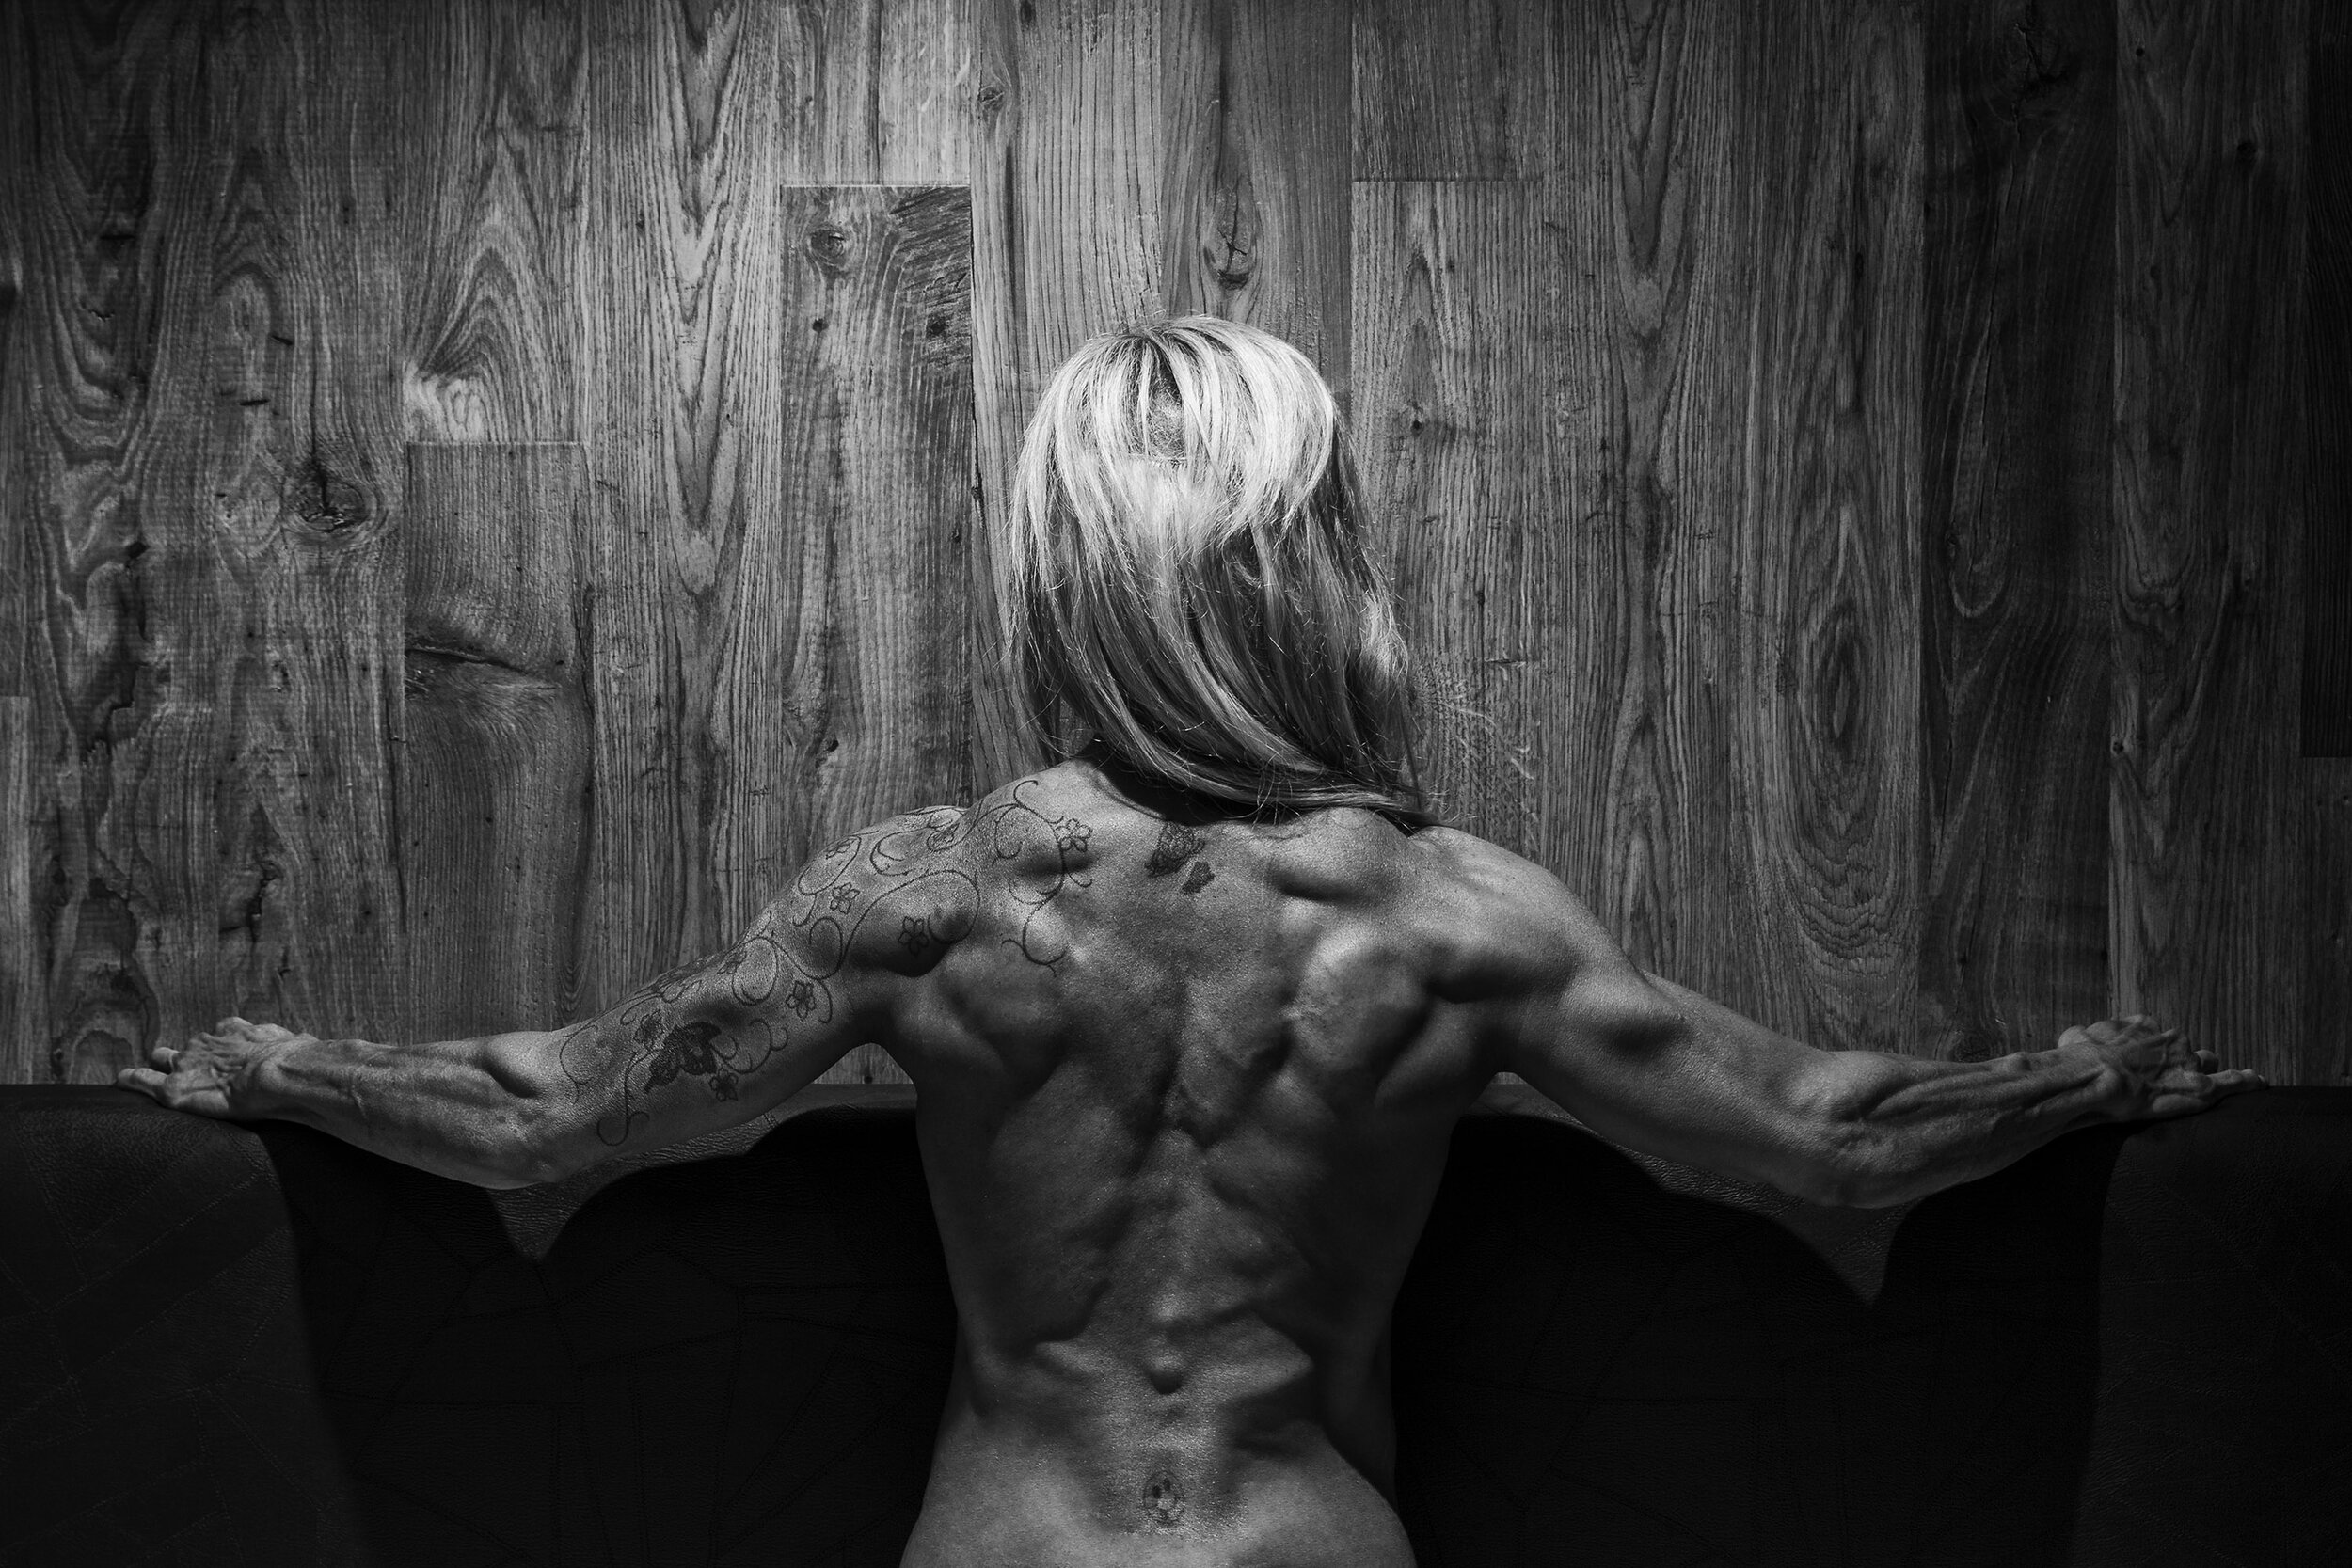 Arms and back.